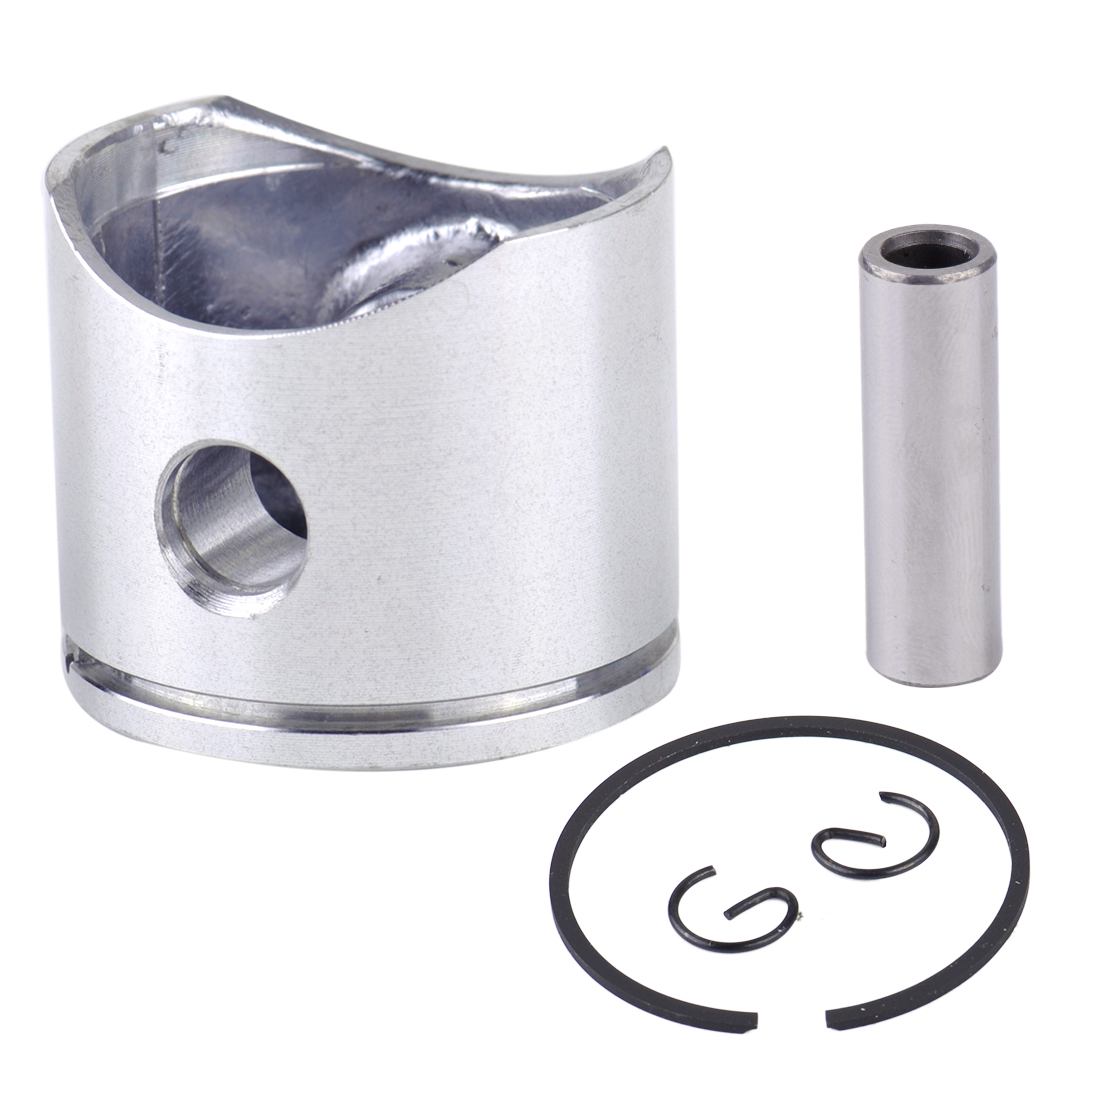 LETAOSK 40mm Piston Circlip Pin Kit Replacement Fit For Husqvarna 41 141 142 Chainsaw 530 06 94-54Accessories